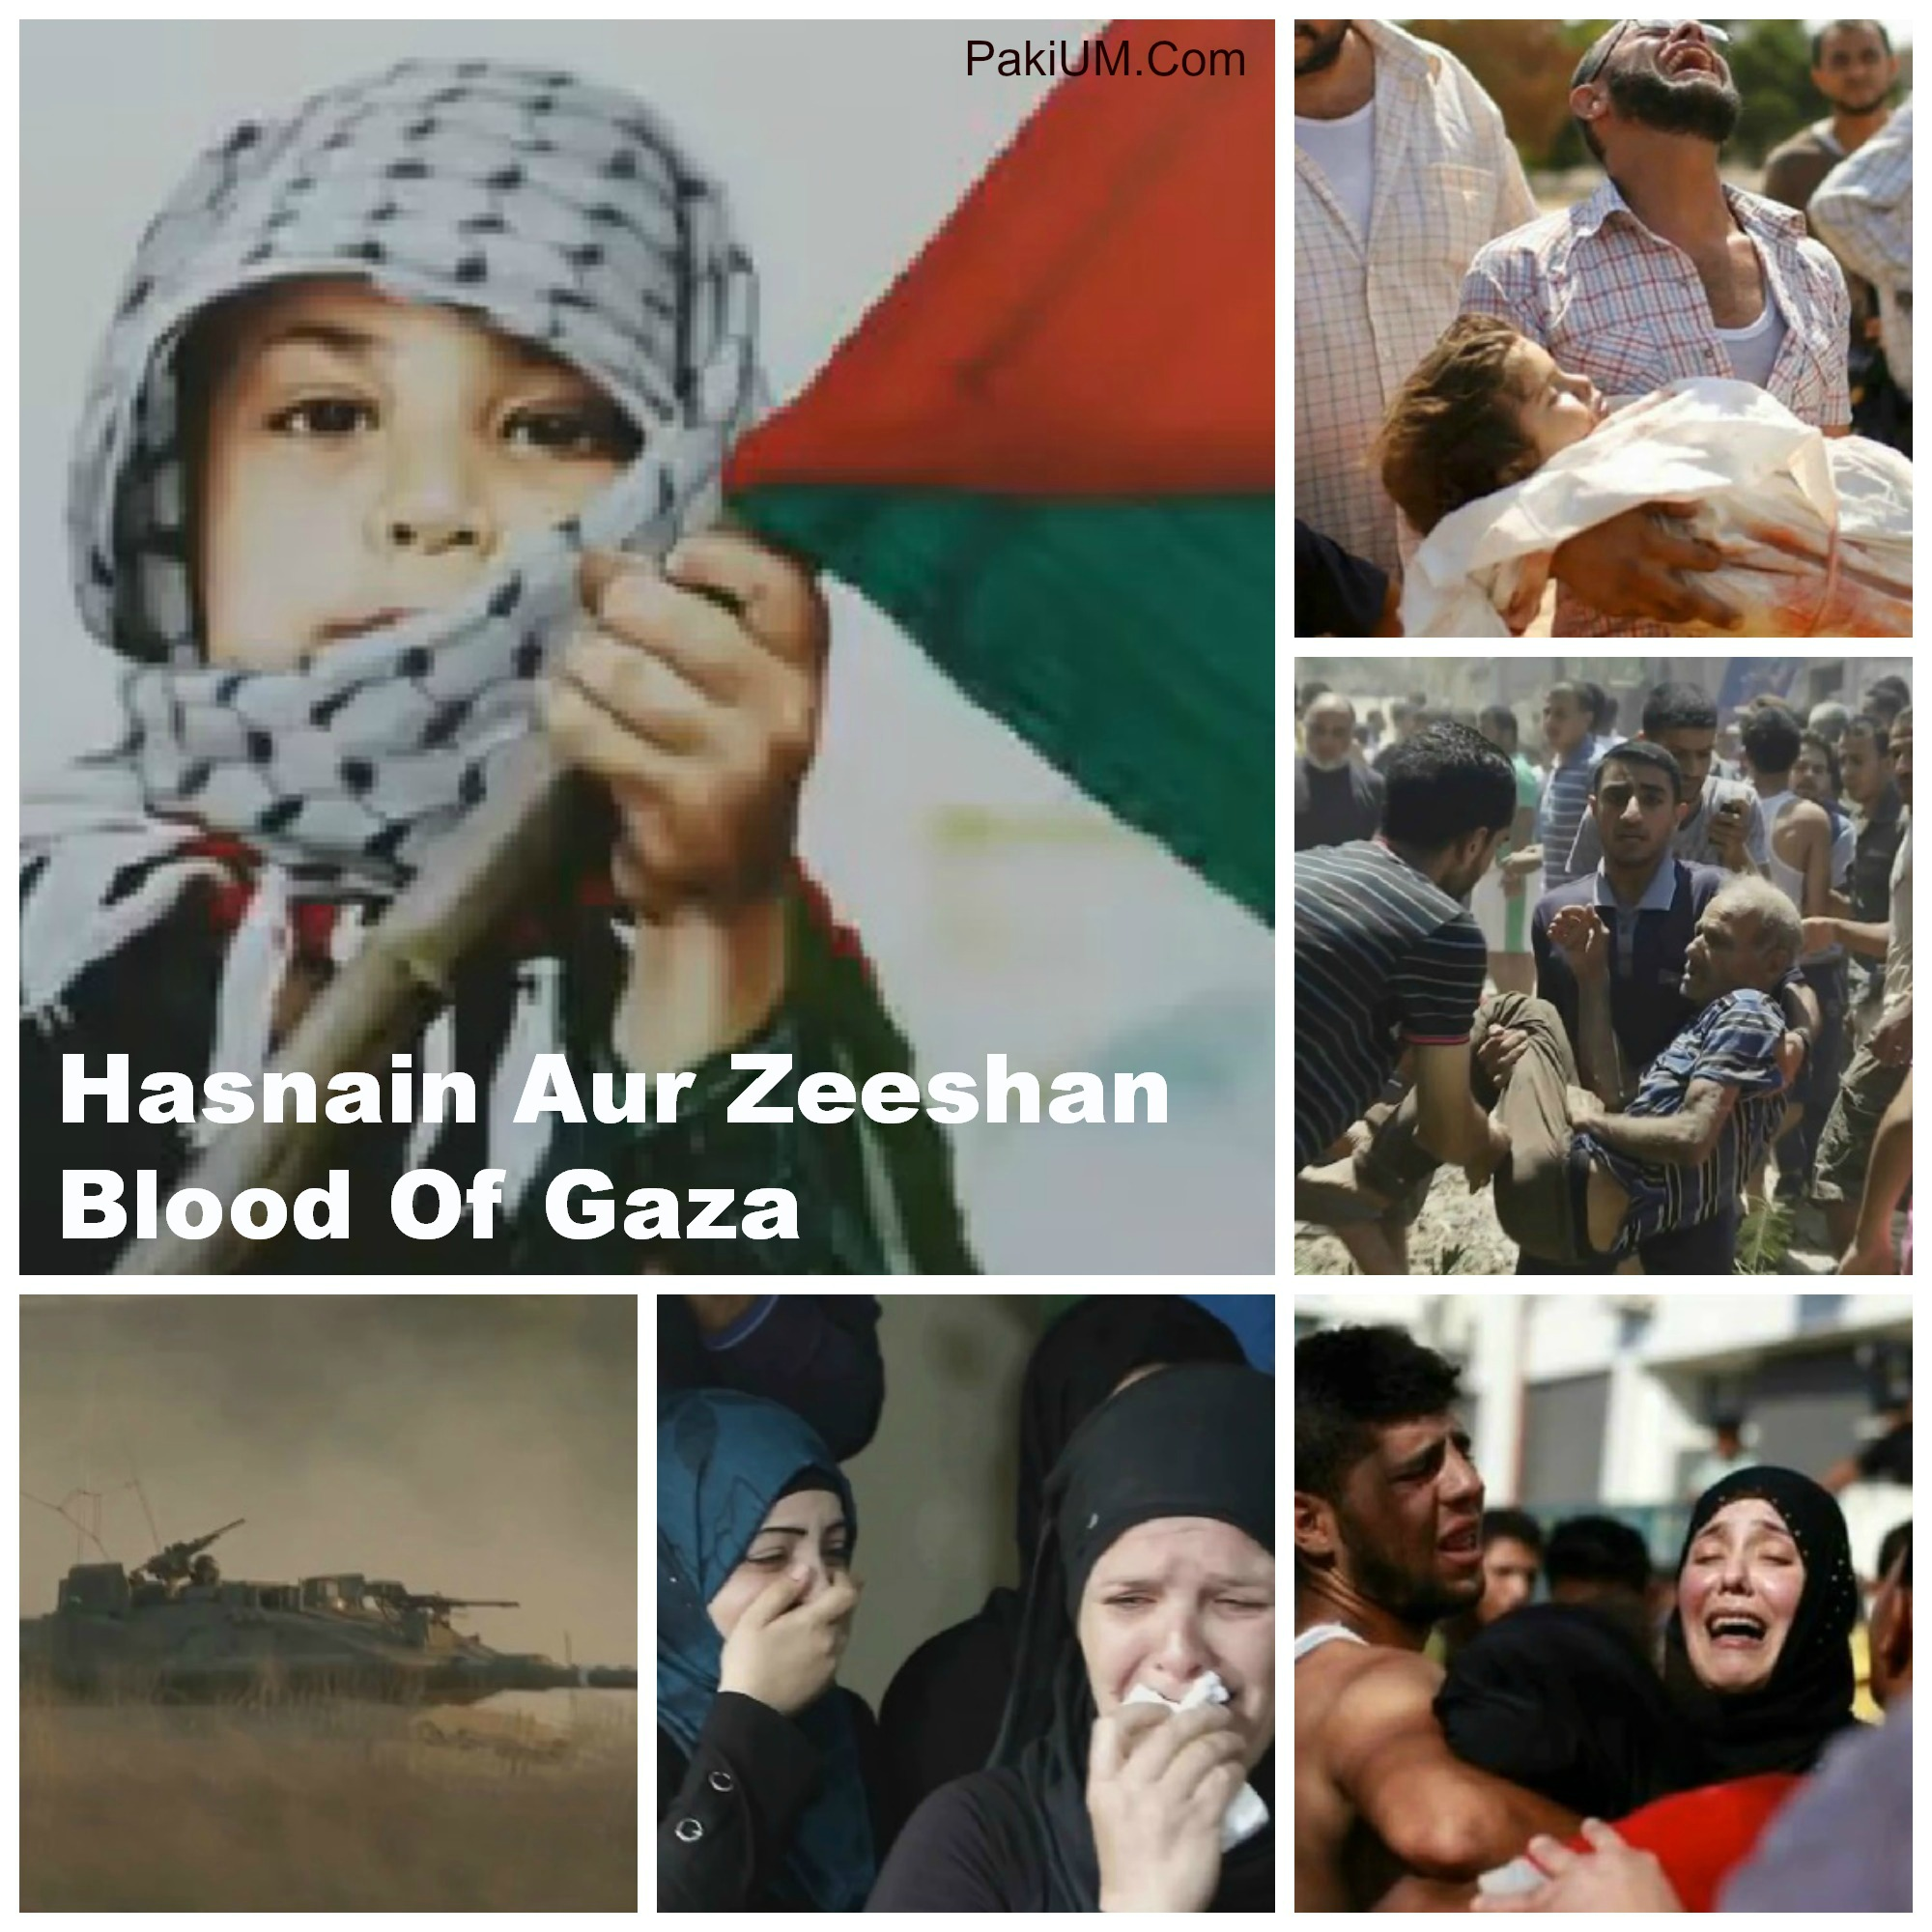 hasnain-aur-zeeshan-blood-of-gaza